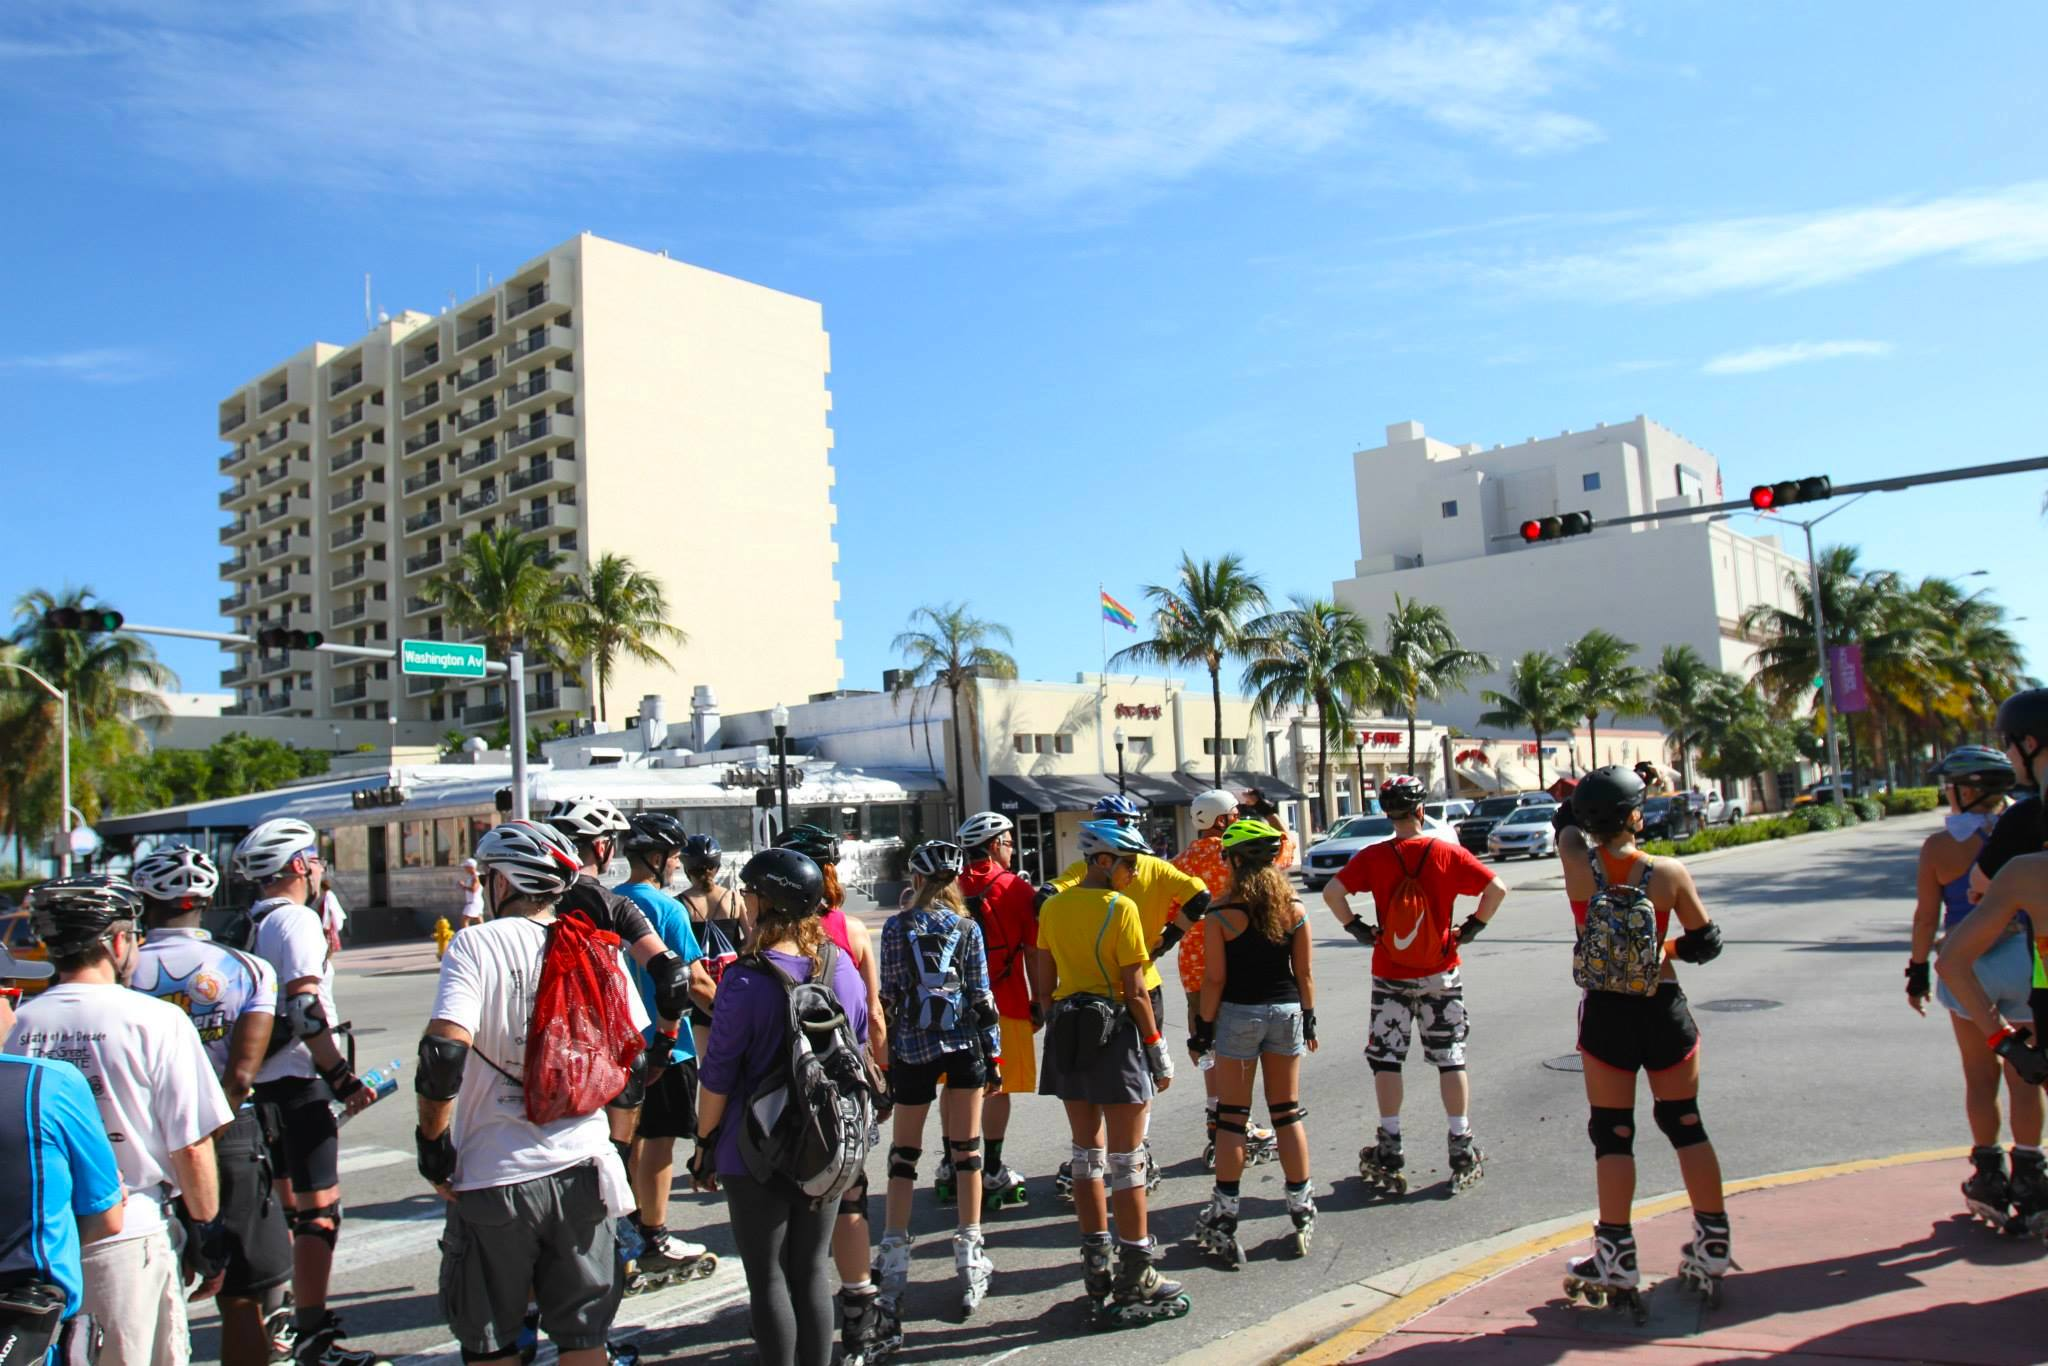 Art Deco Tour challenges skaters to go up and down hills, cross the roads and explore various nooks of Miami Beach under the guidance of experienced skaters & volunteers.